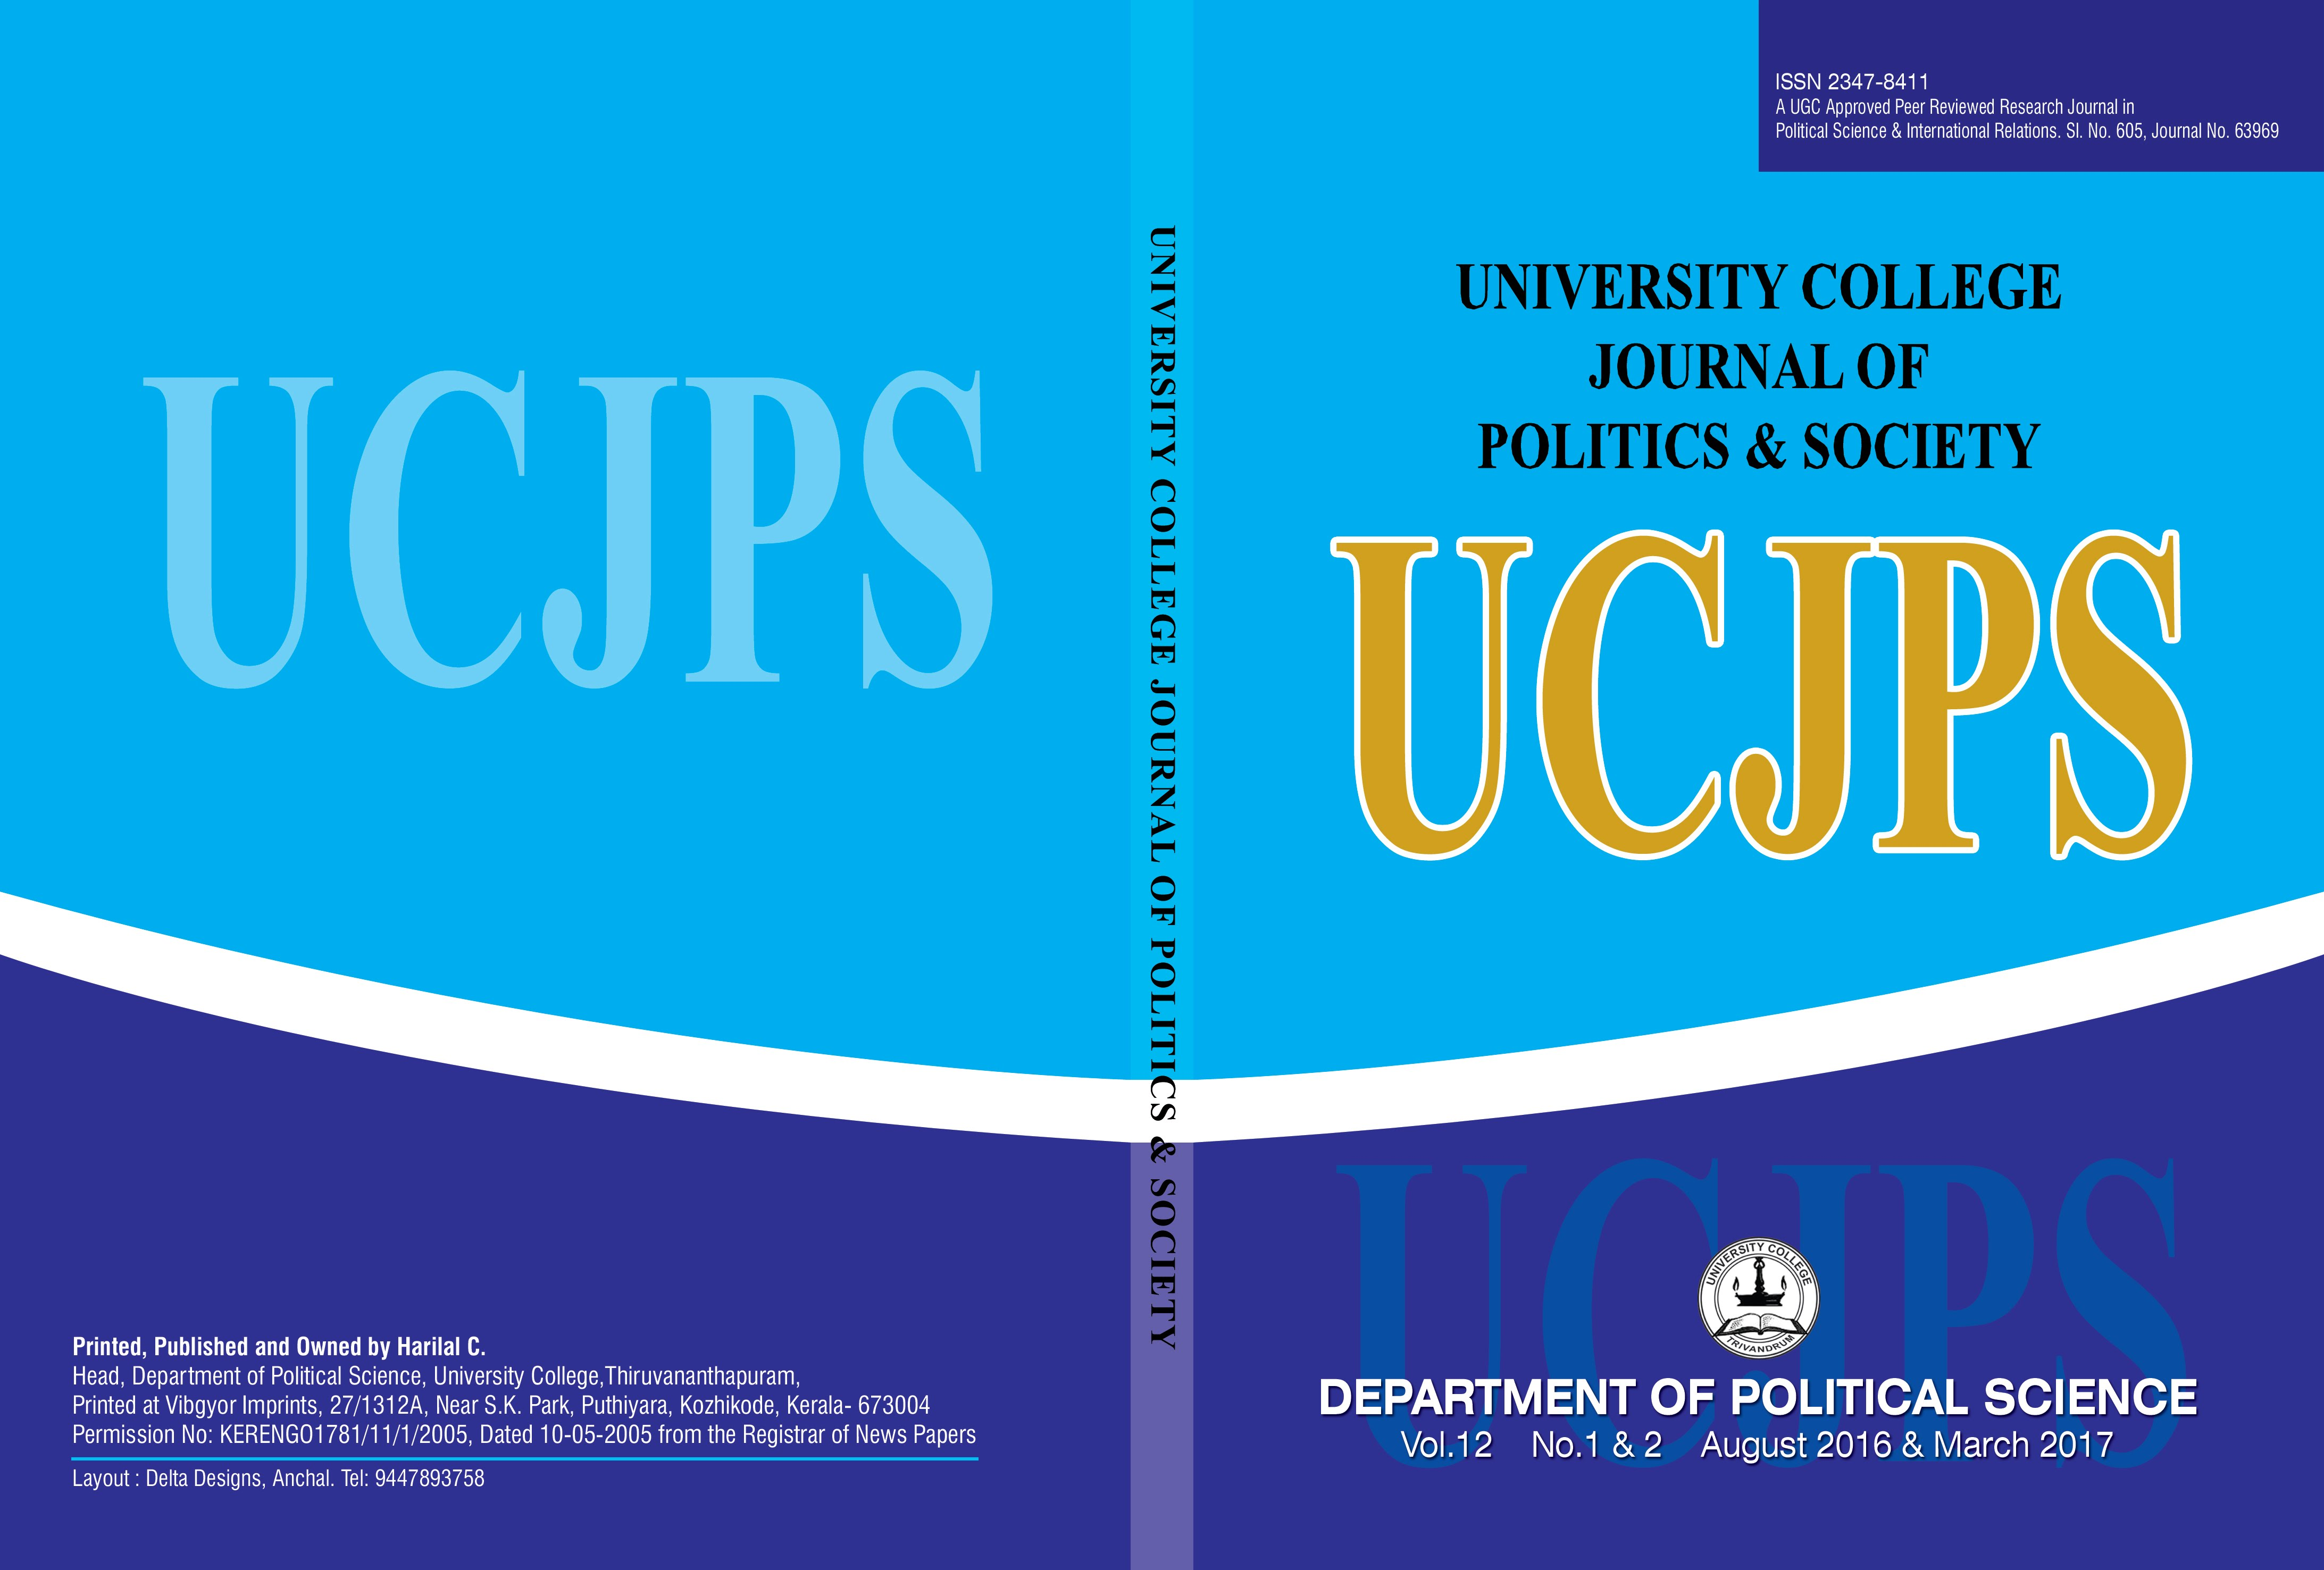 University College Journal of Politics and Society (UCJPS)